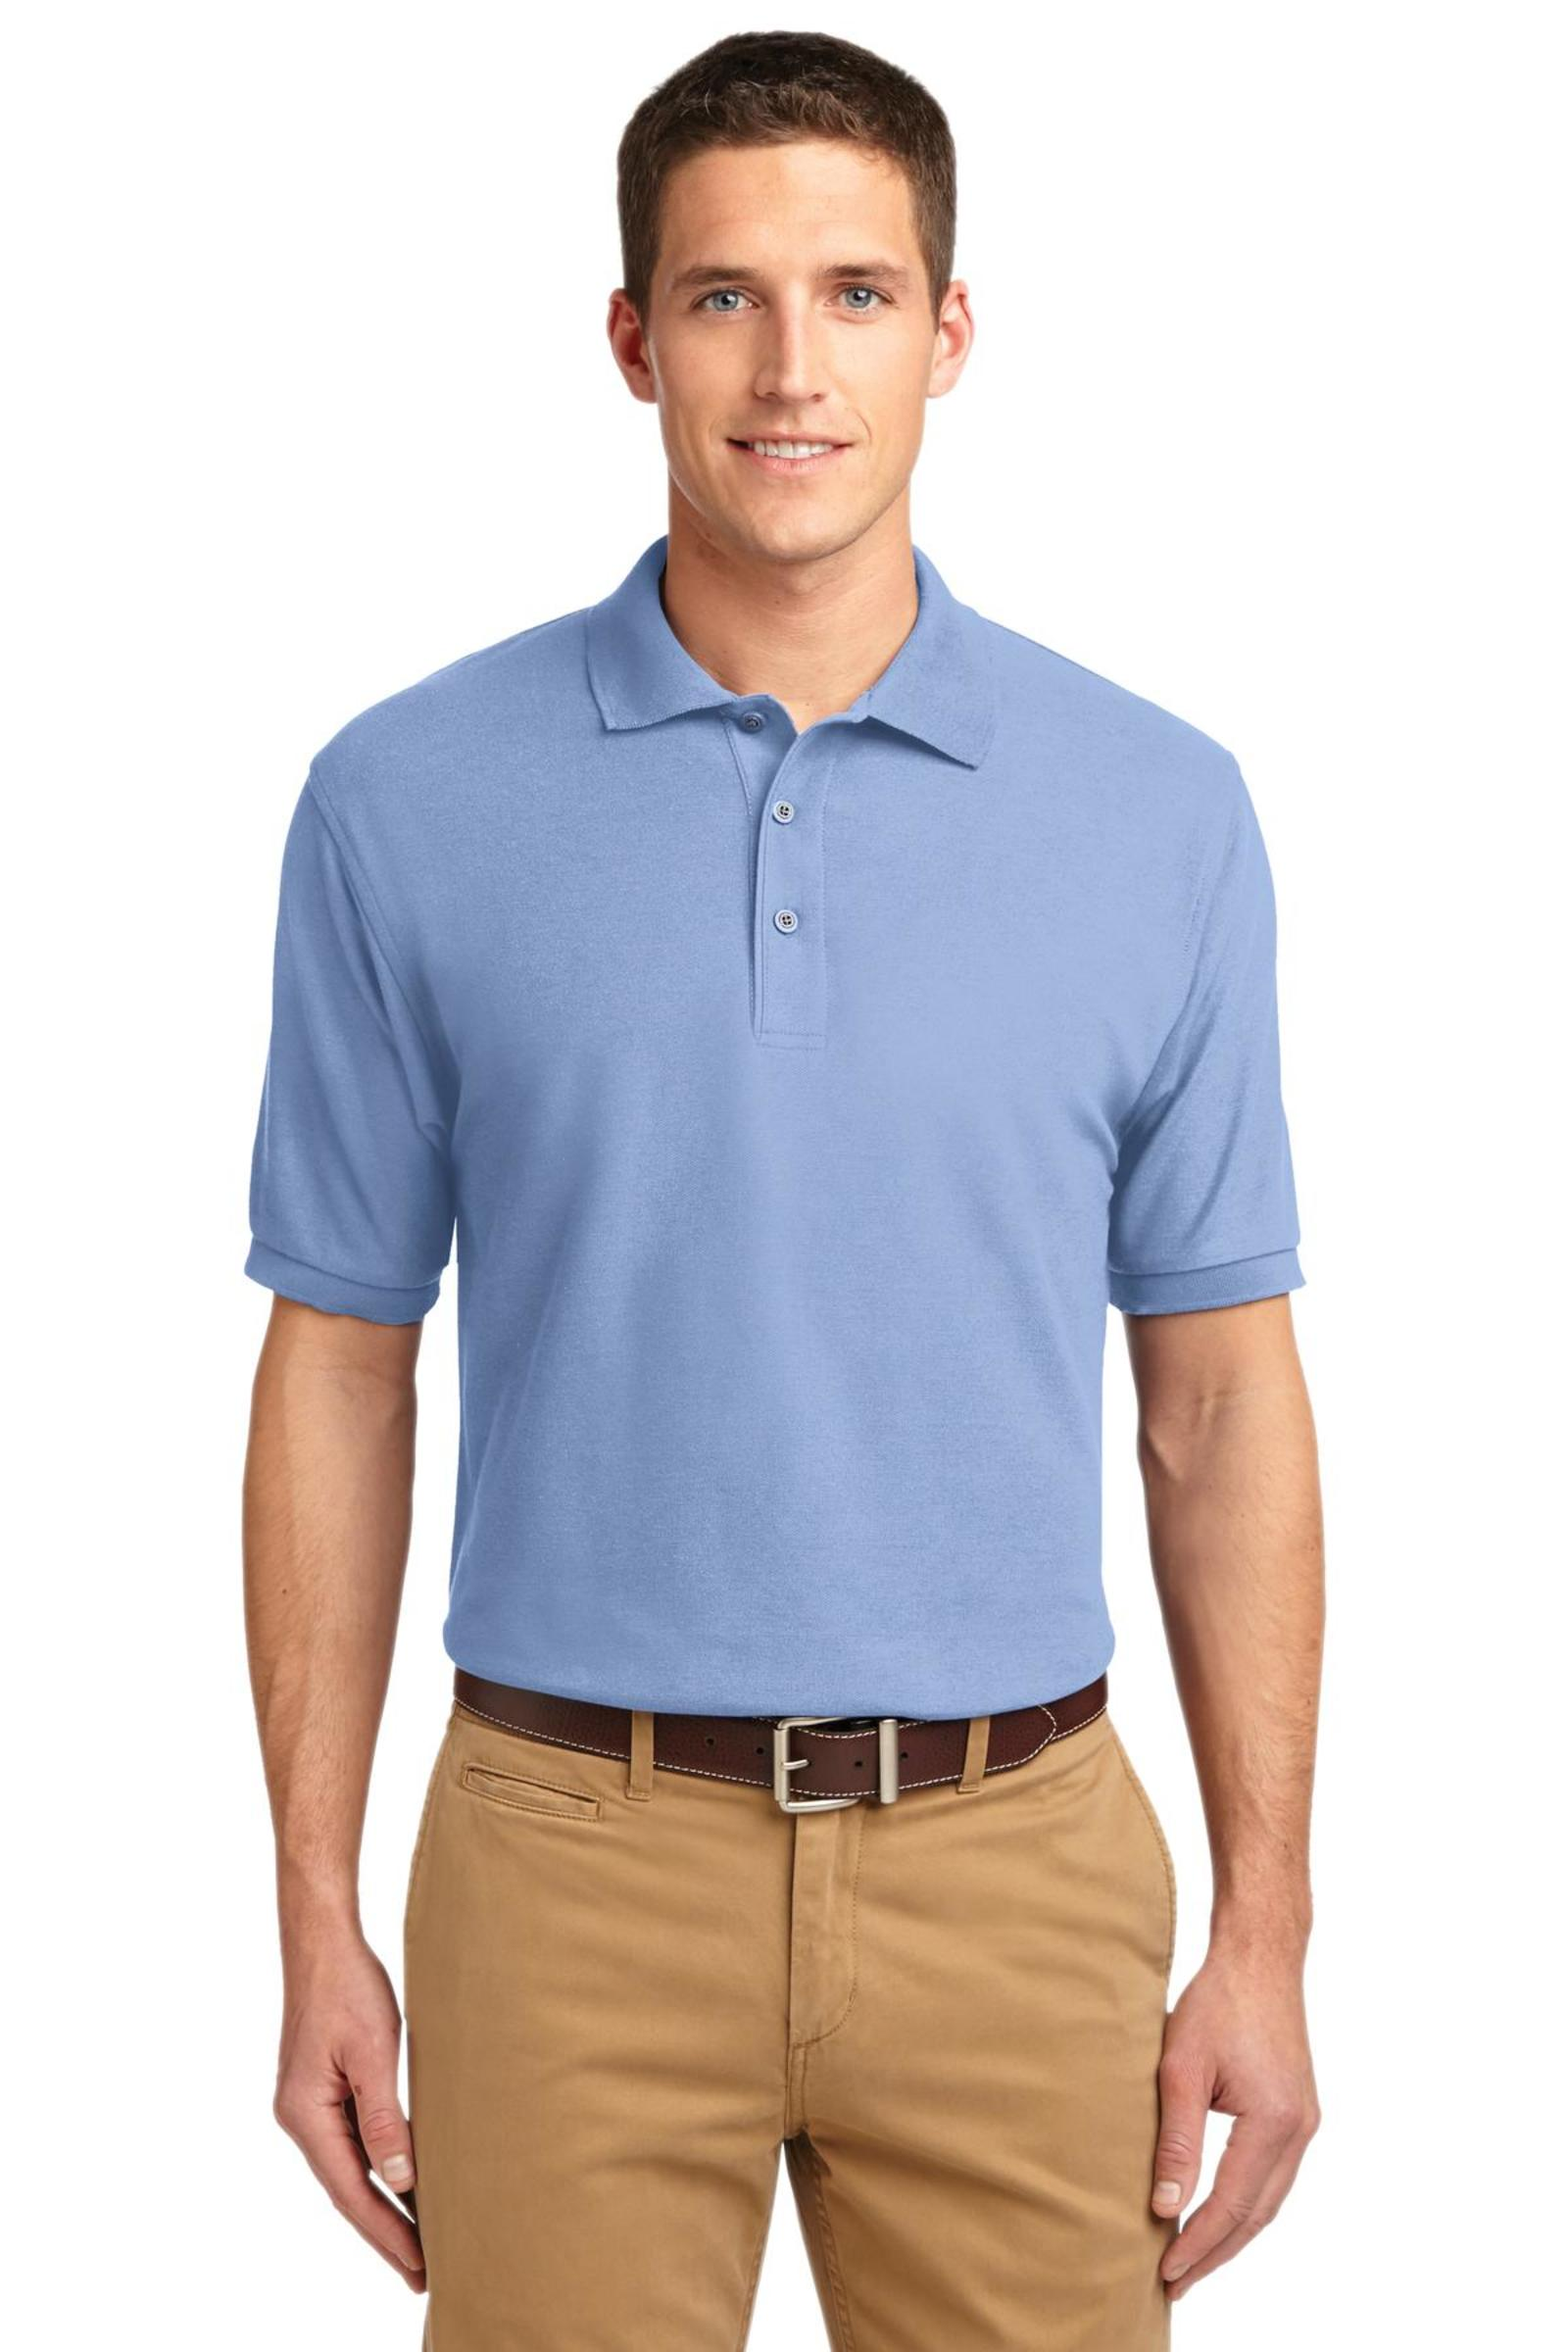 Port Authority Embroidered Men's Silk Touch Pique Polo